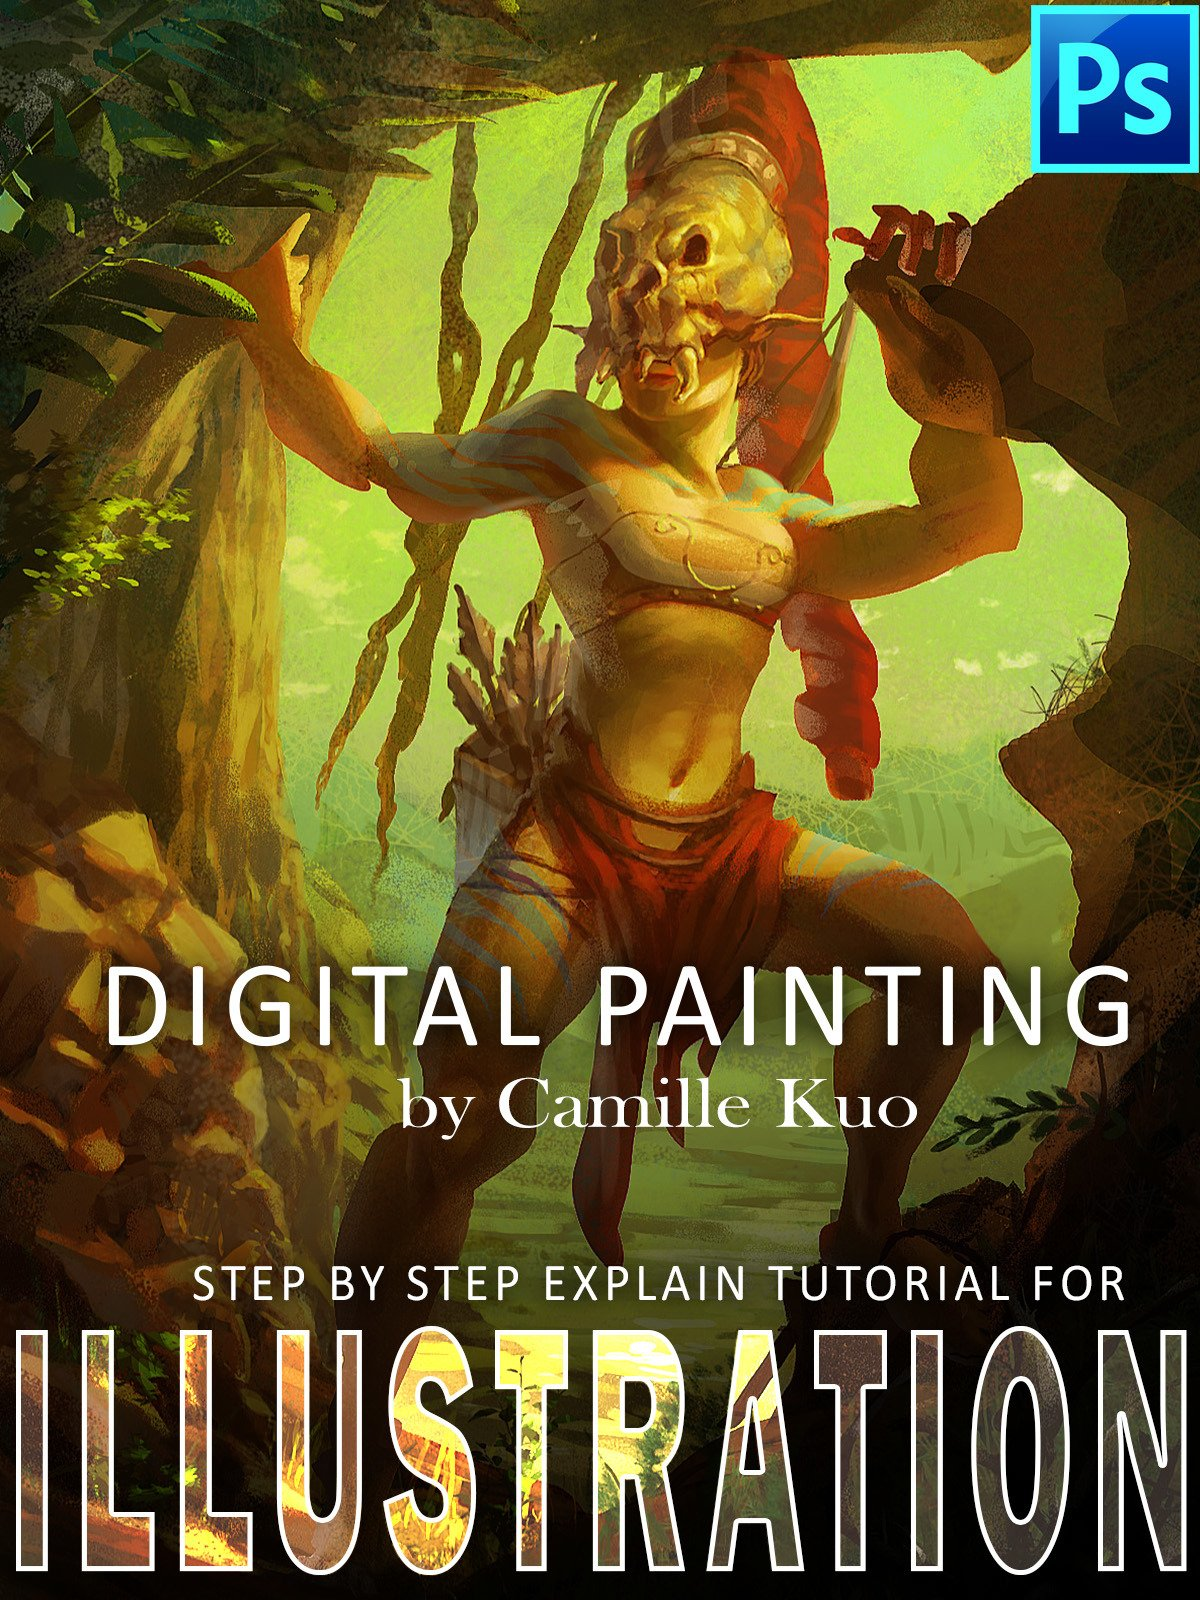 Digital Painting by Camille Kuo: step by step explain tutorial for illustration on Amazon Prime Video UK